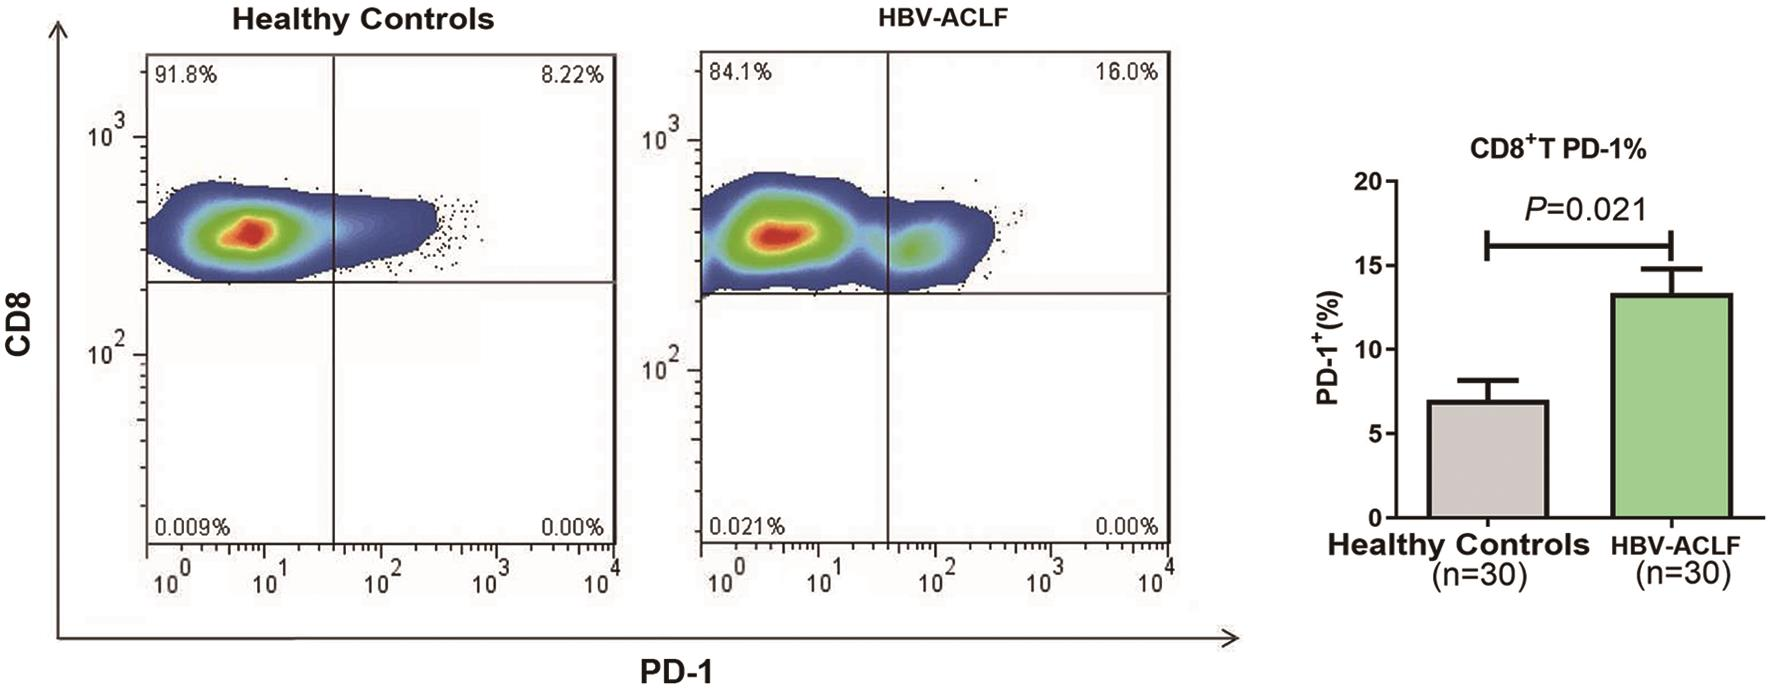 Expression of PD-1 in peripheral CD8+ T cells of patients with HBV-ACLF and HCs.